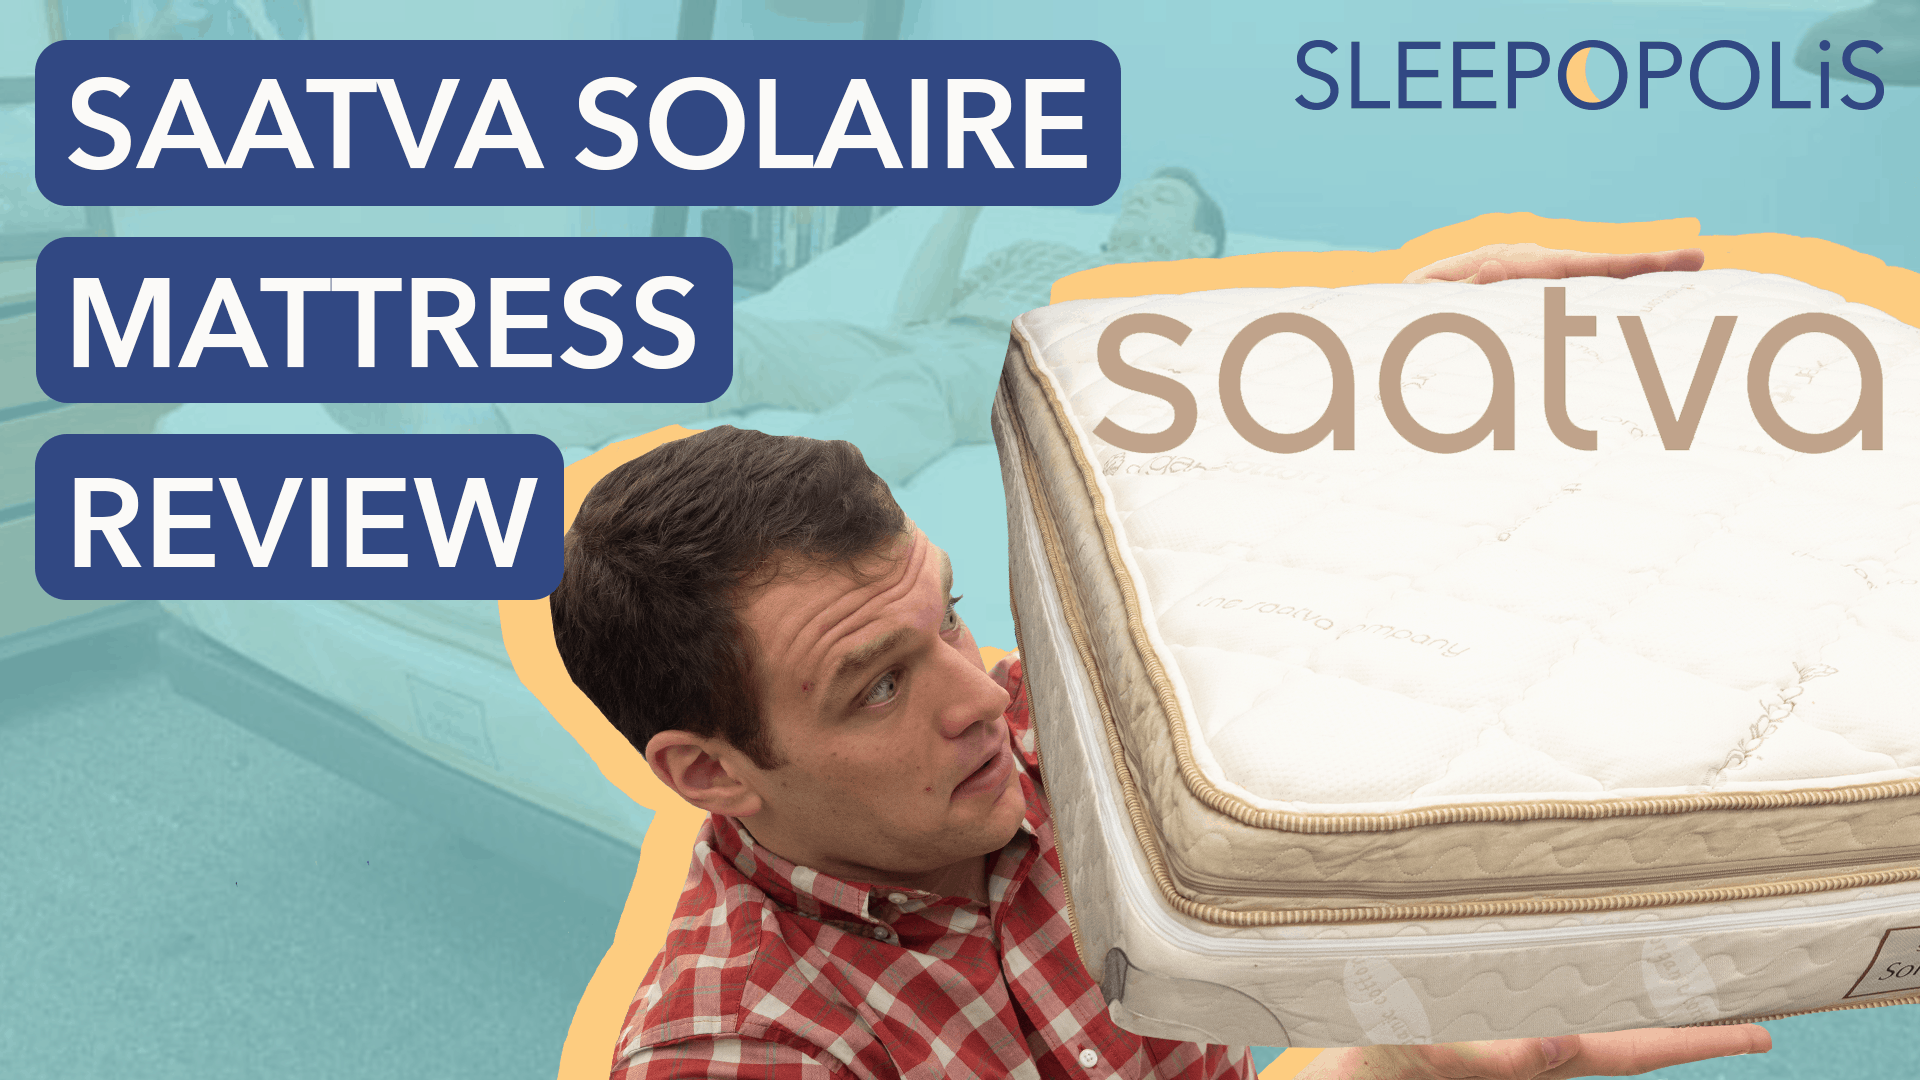 Saatva Solaire Mattress Review Adjustable Firmness For